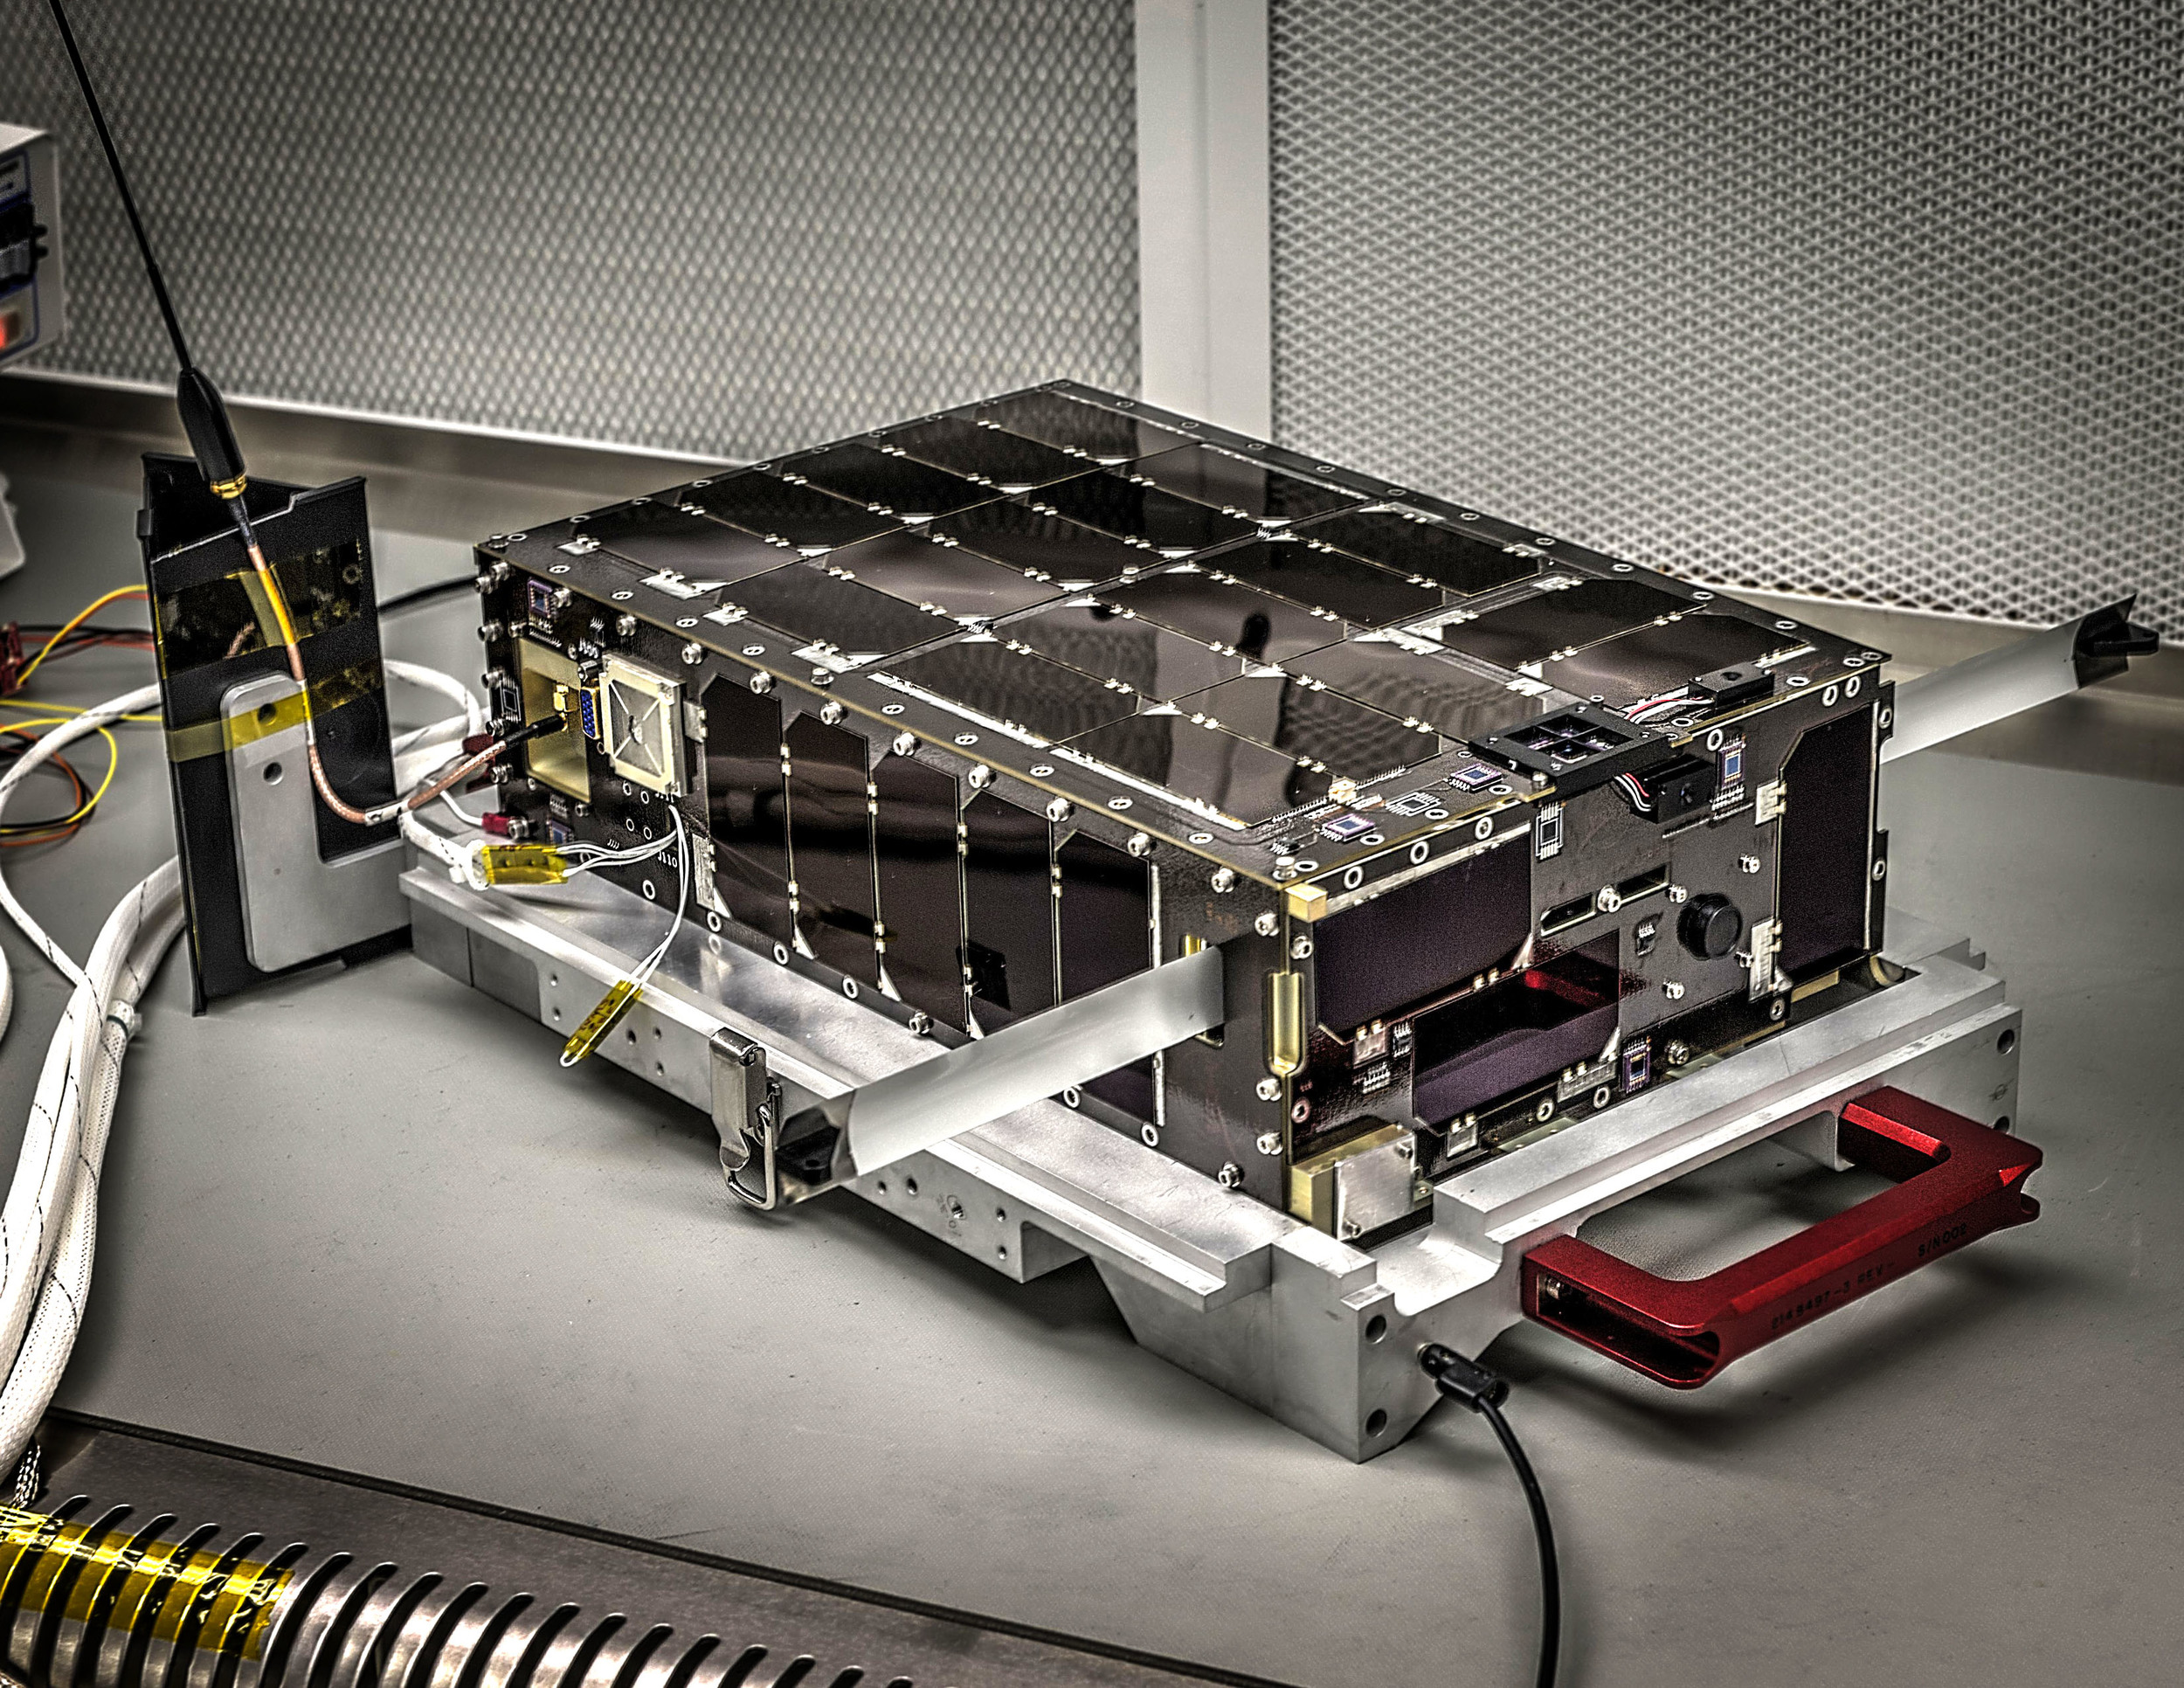 Dellingr's exterior is lined with solar panels. Slighty larger than a cereal box, Dellingr is a six-unit, or 6U, CubeSat – indicating its volume is approximately six liters. – Image Credits: NASA's Goddard Space Flight Center/Bill Hrybyk